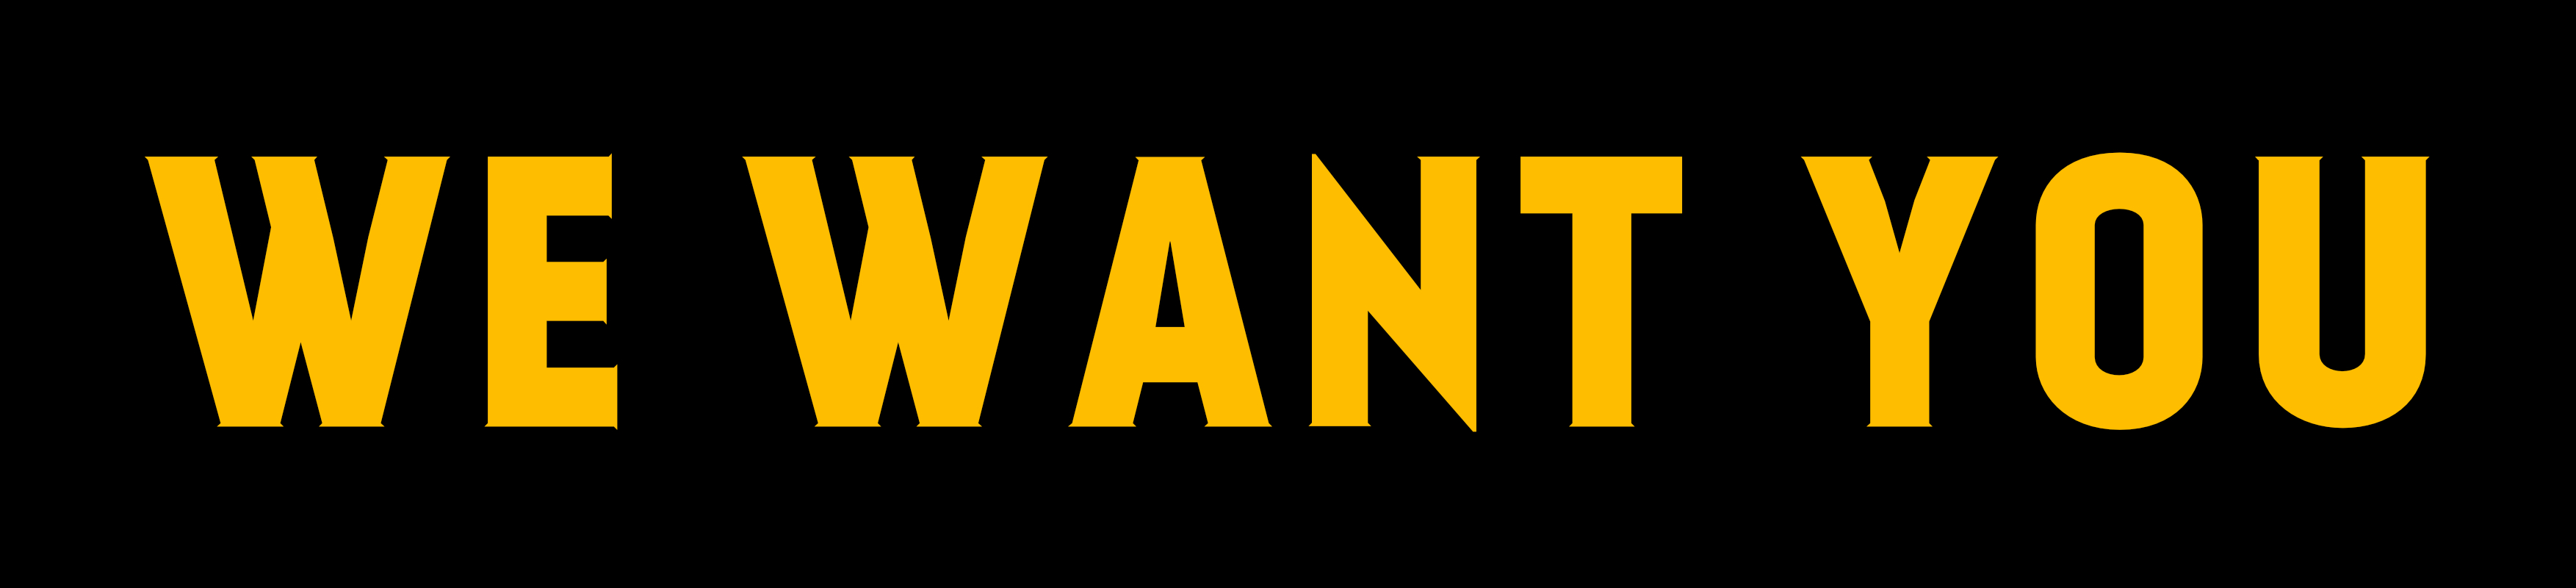 We want you header